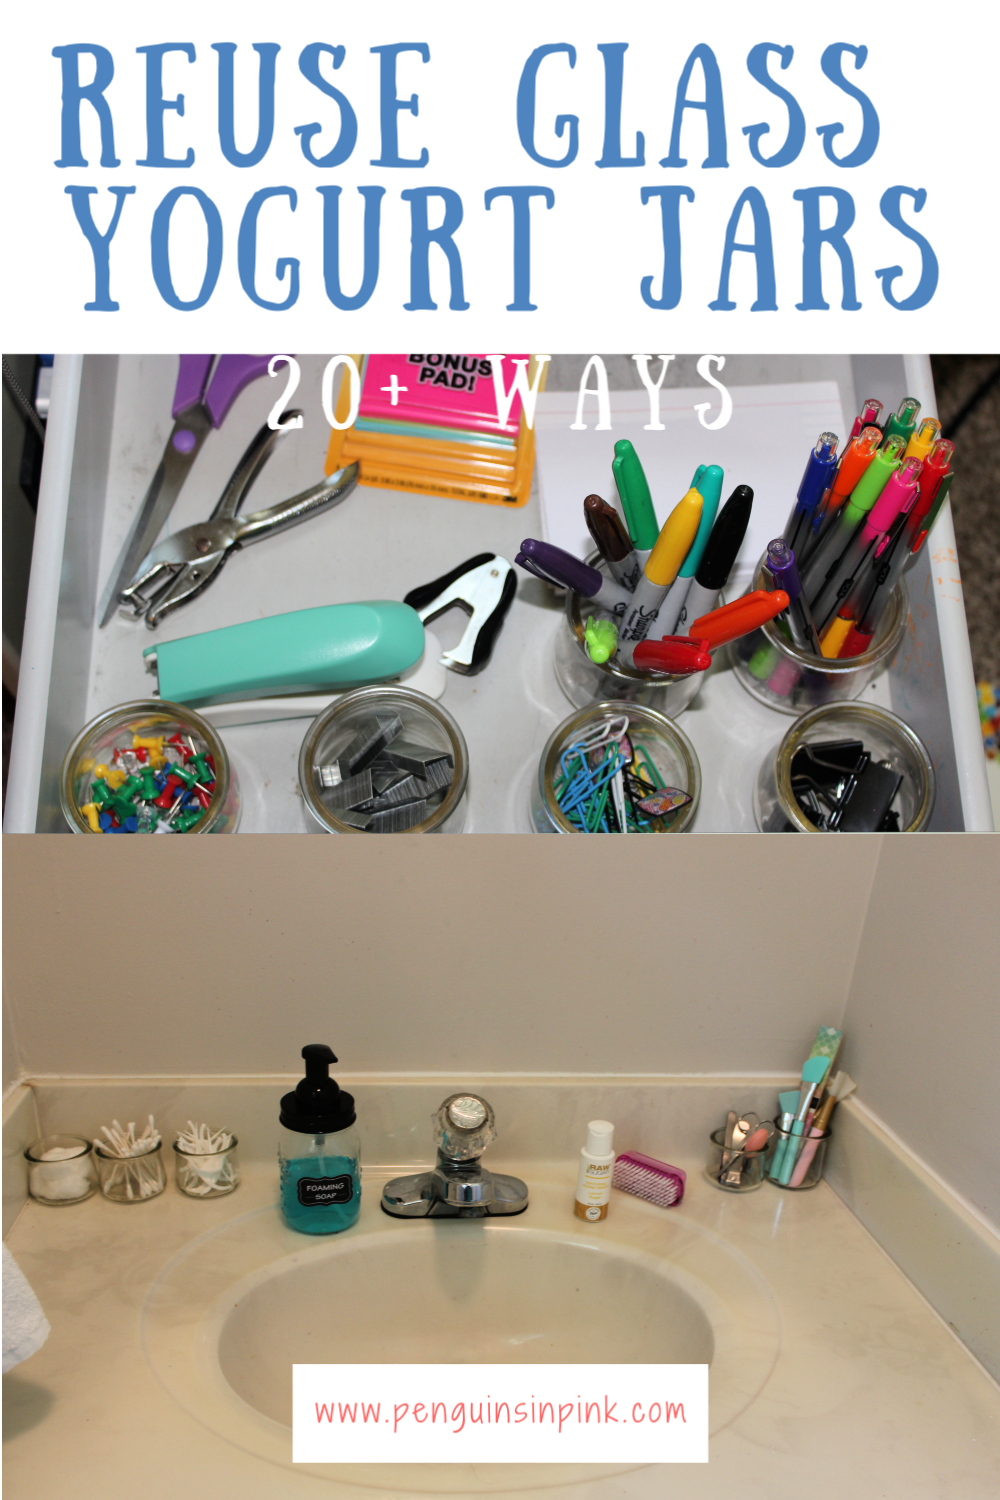 Have a growing collection of glass yogurt or pudding jars? Check out these 20+ ideas to reuse glass yogurt jars in places like the kitchen and bathroom and even office and craft use.